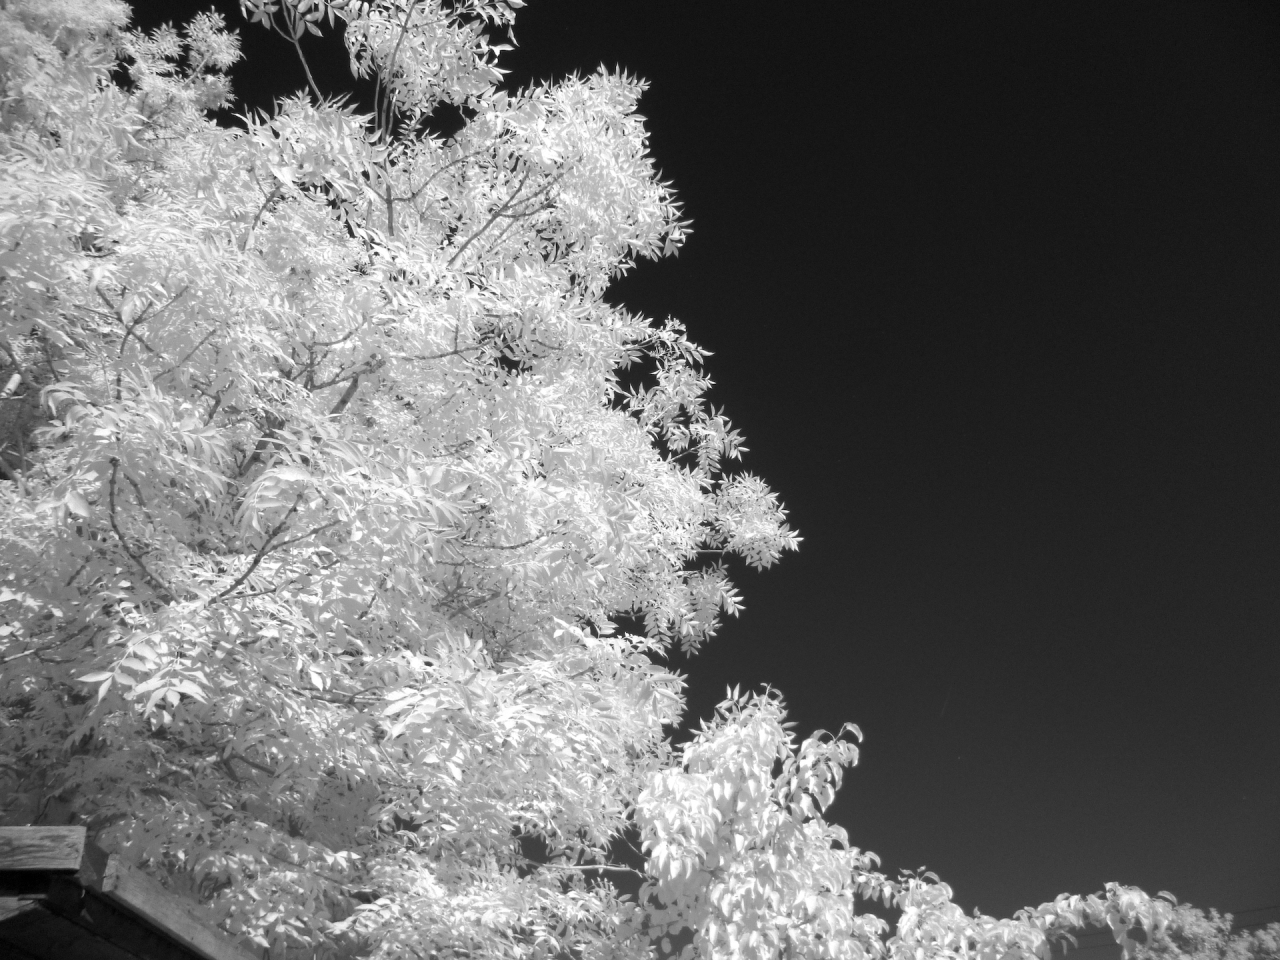 Infrared Conversion of Panasonic Digital Camera